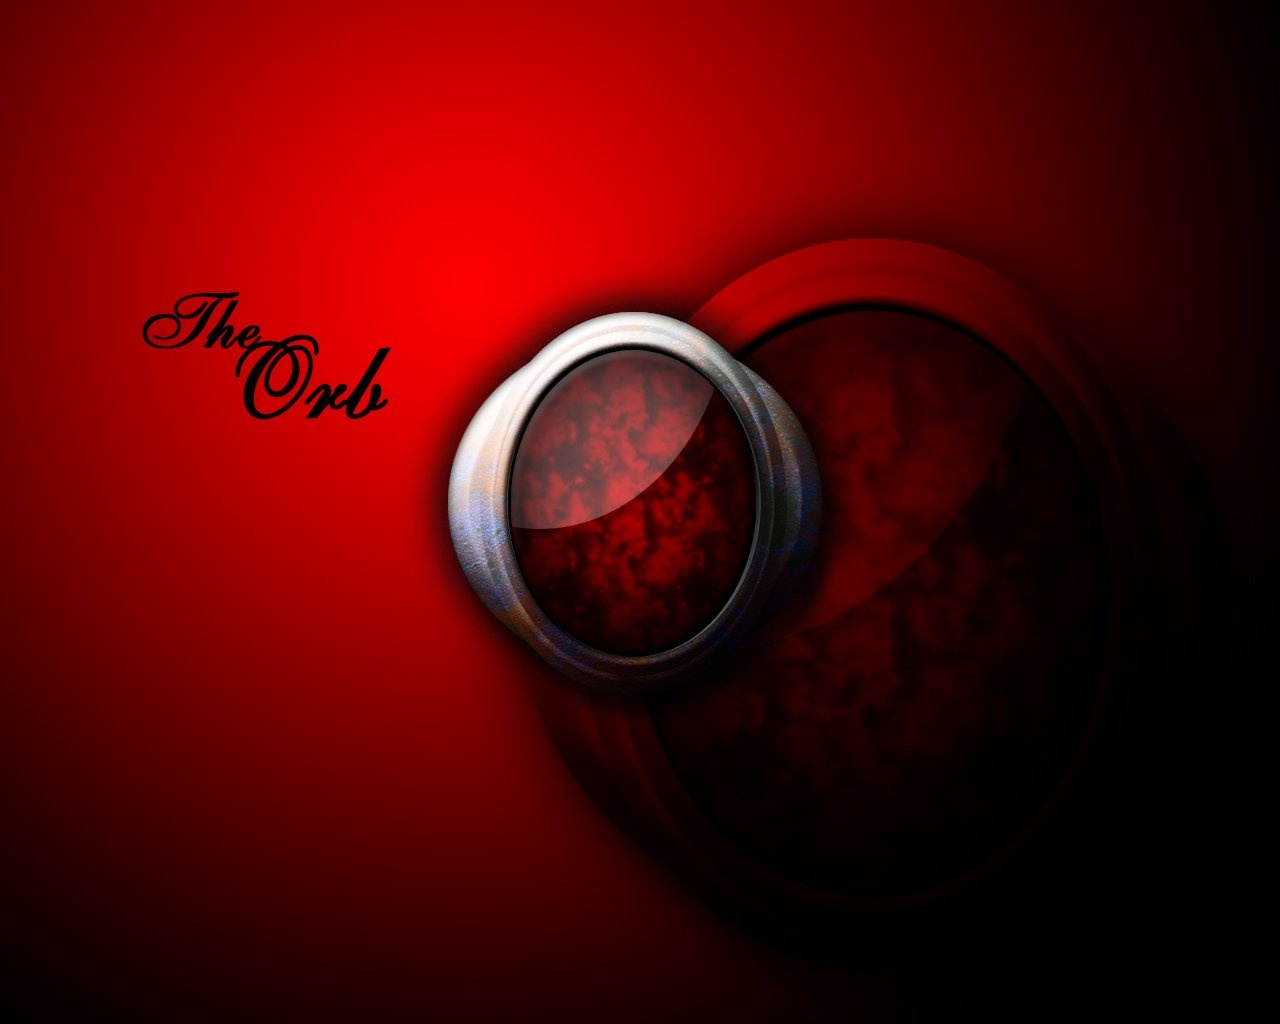 abstract wallpapers hd red orb